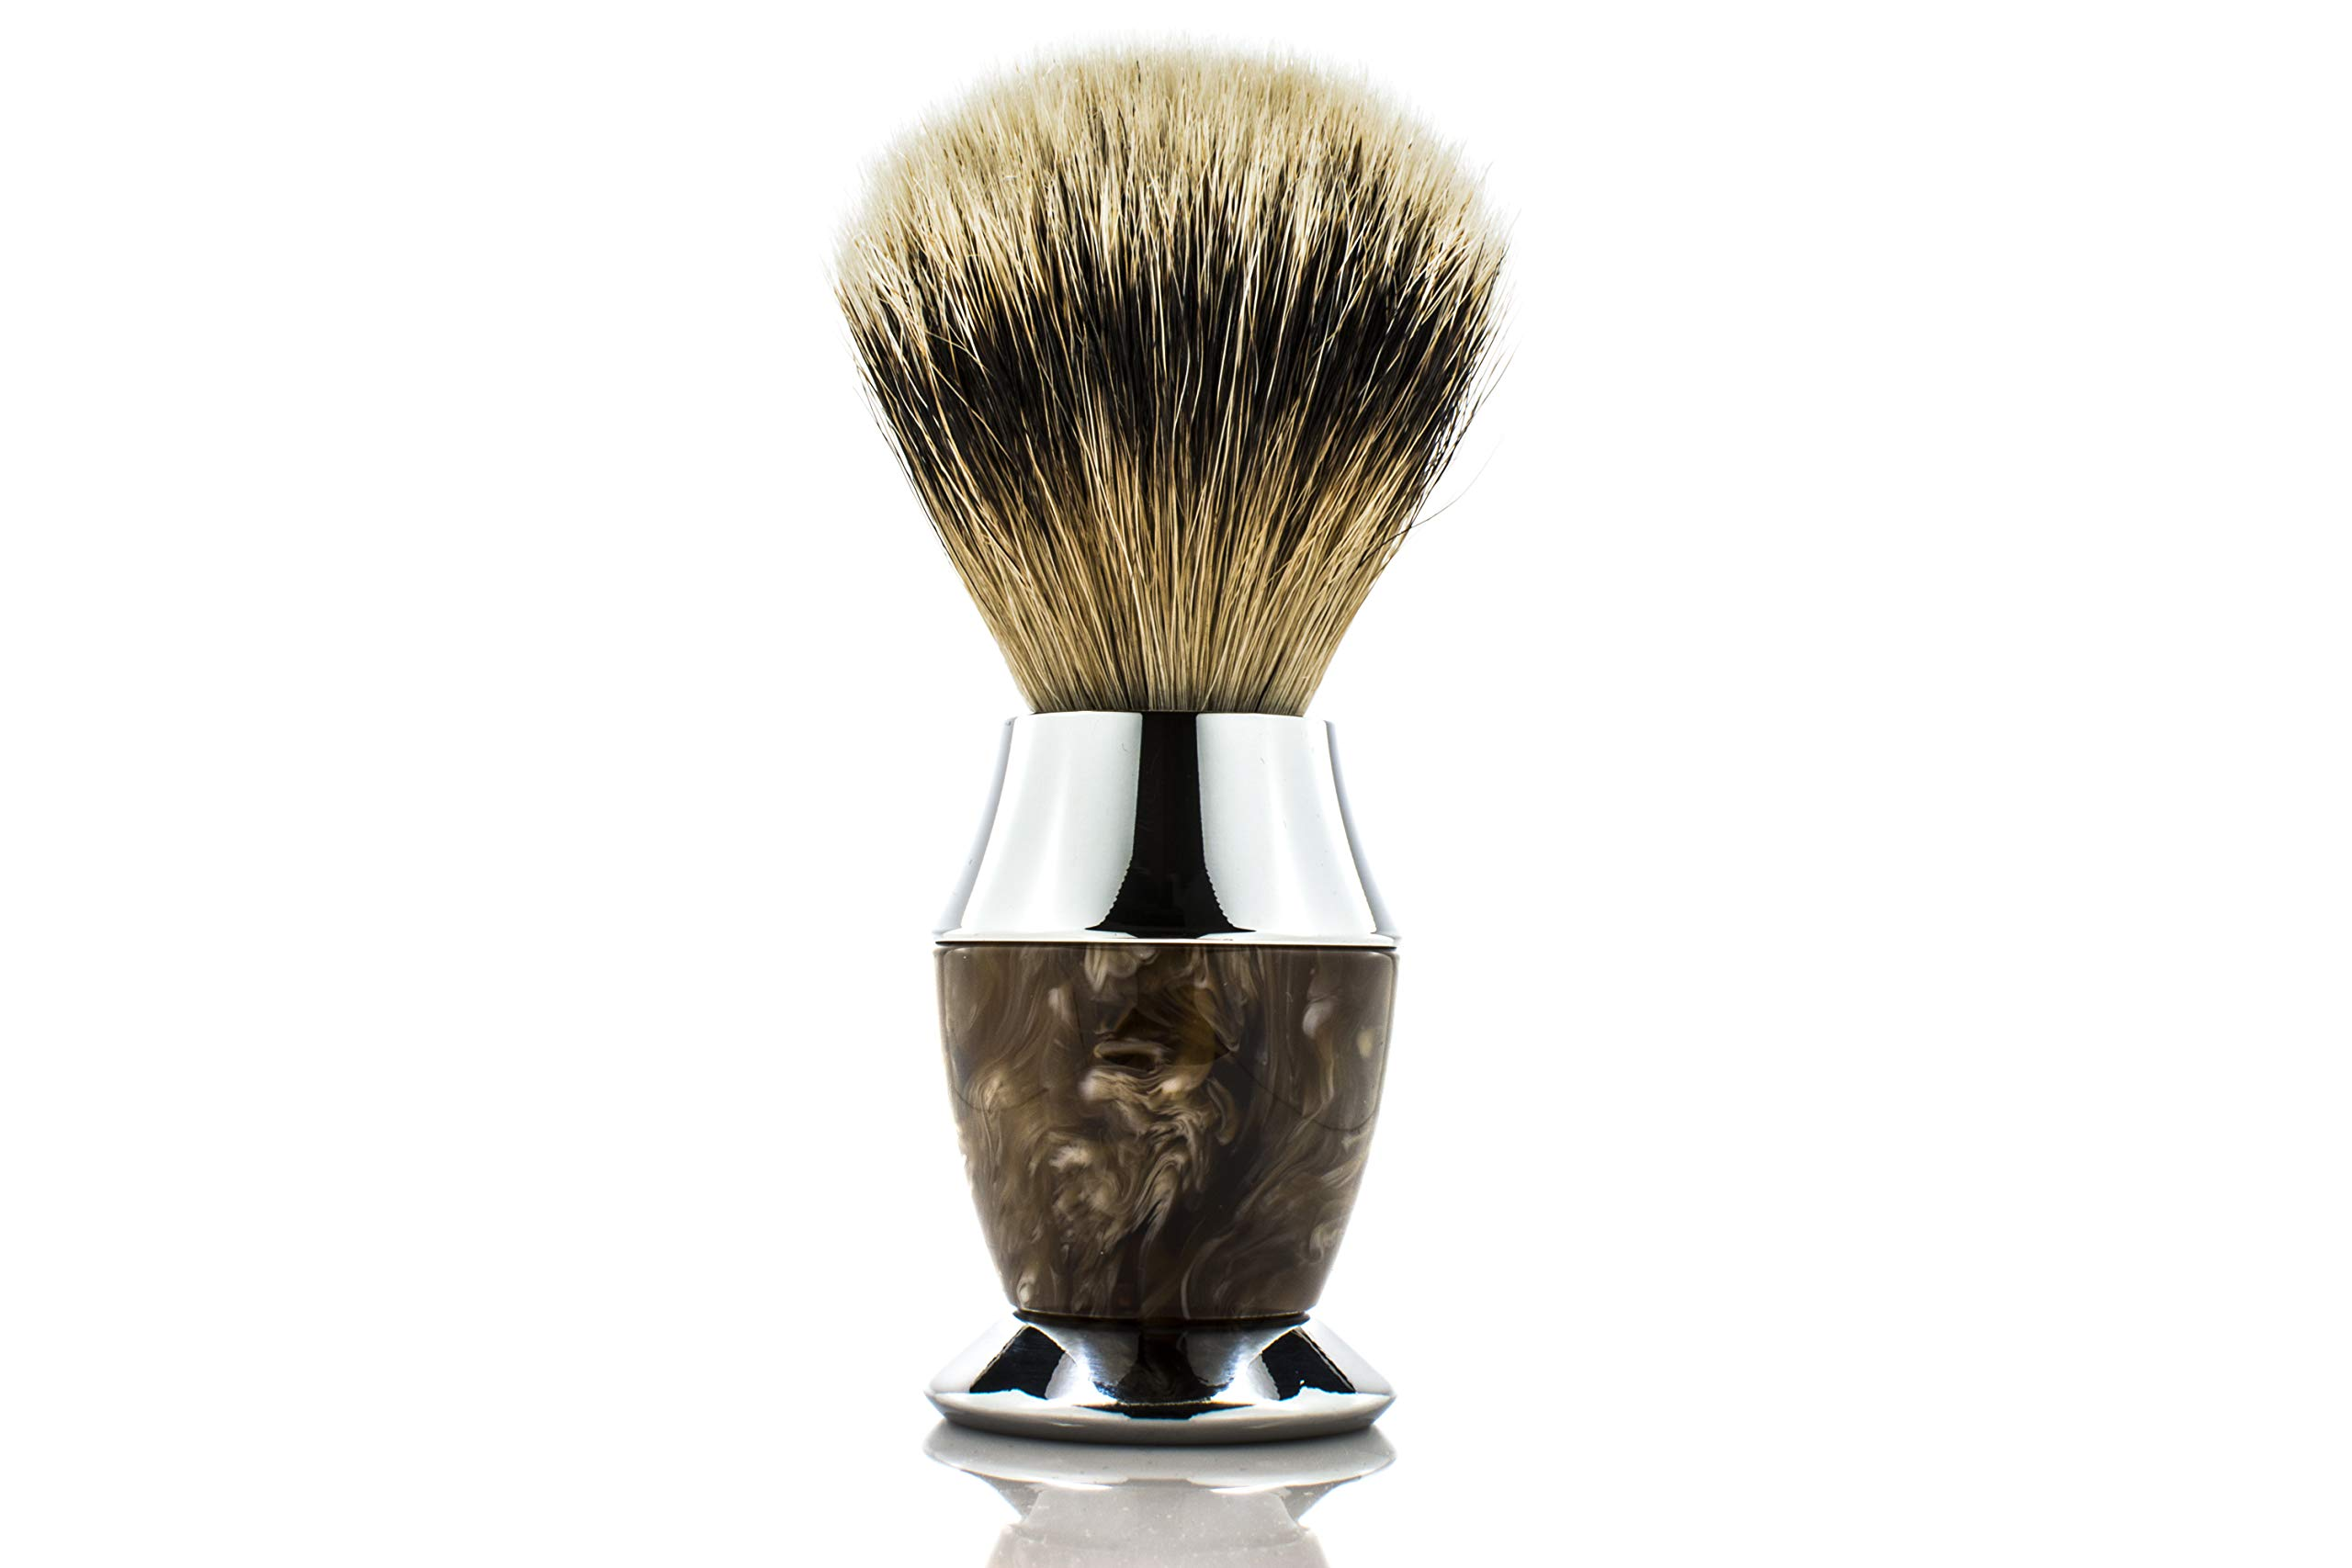 Maison Lambert 100% Silvertip Badger Bristle, Horn imitation Handle Shaving Brush - FREE US SHIPPING - Perfect gift for wet shavers for christmas, birthday or fathers day! by Maison Lambert